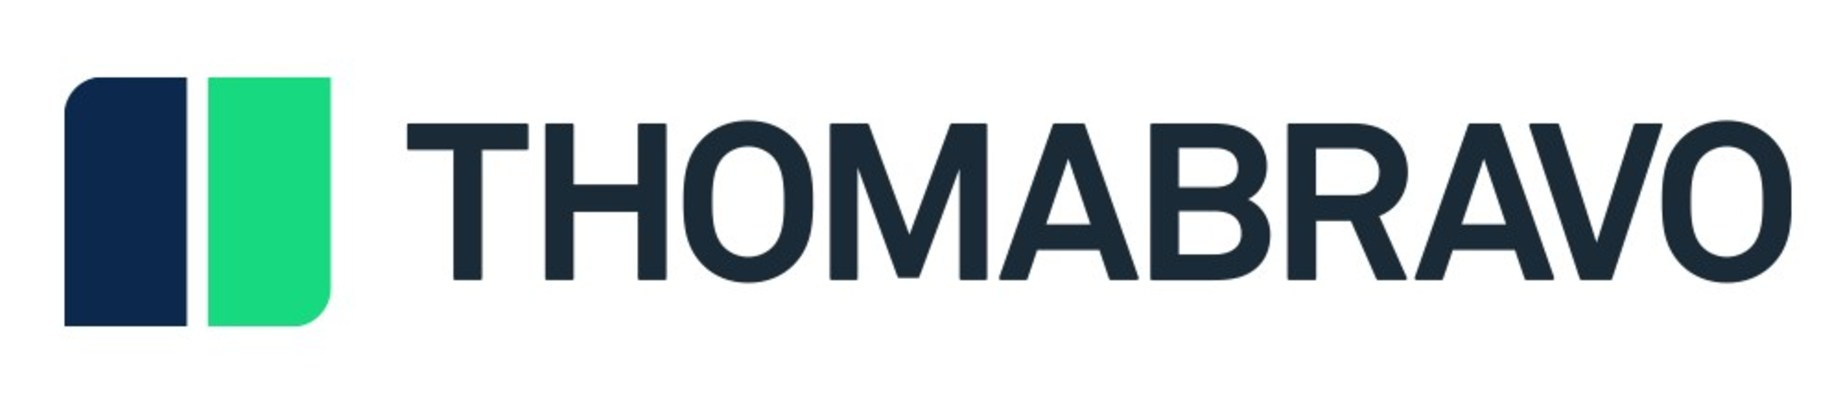 Thoma Bravo is one of the largest private equity firms in the world, with more than $83 billion in assets under management as of June 30, 2021. The firm invests in growth-oriented, innovative companies operating in the software and technology sectors. For more information, visit thomabravo.com